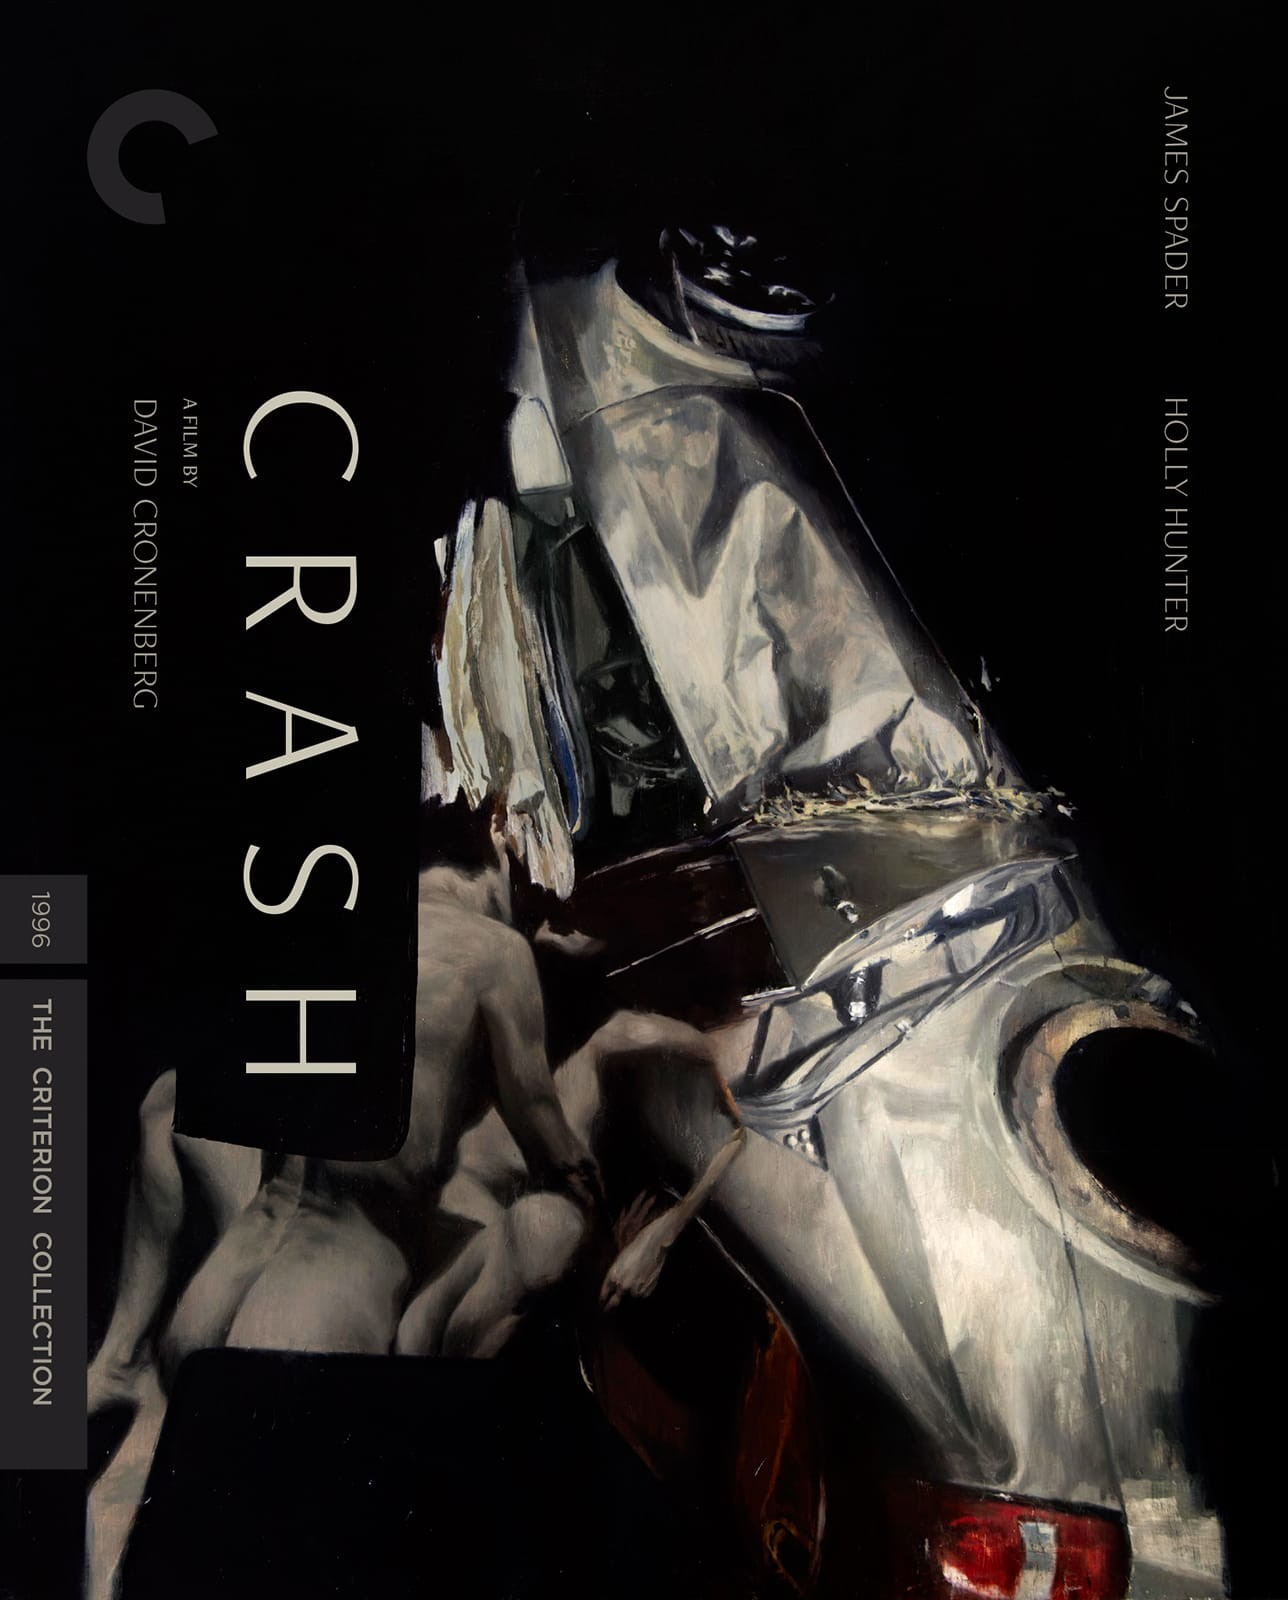 Crash (1996) | The Criterion Collection